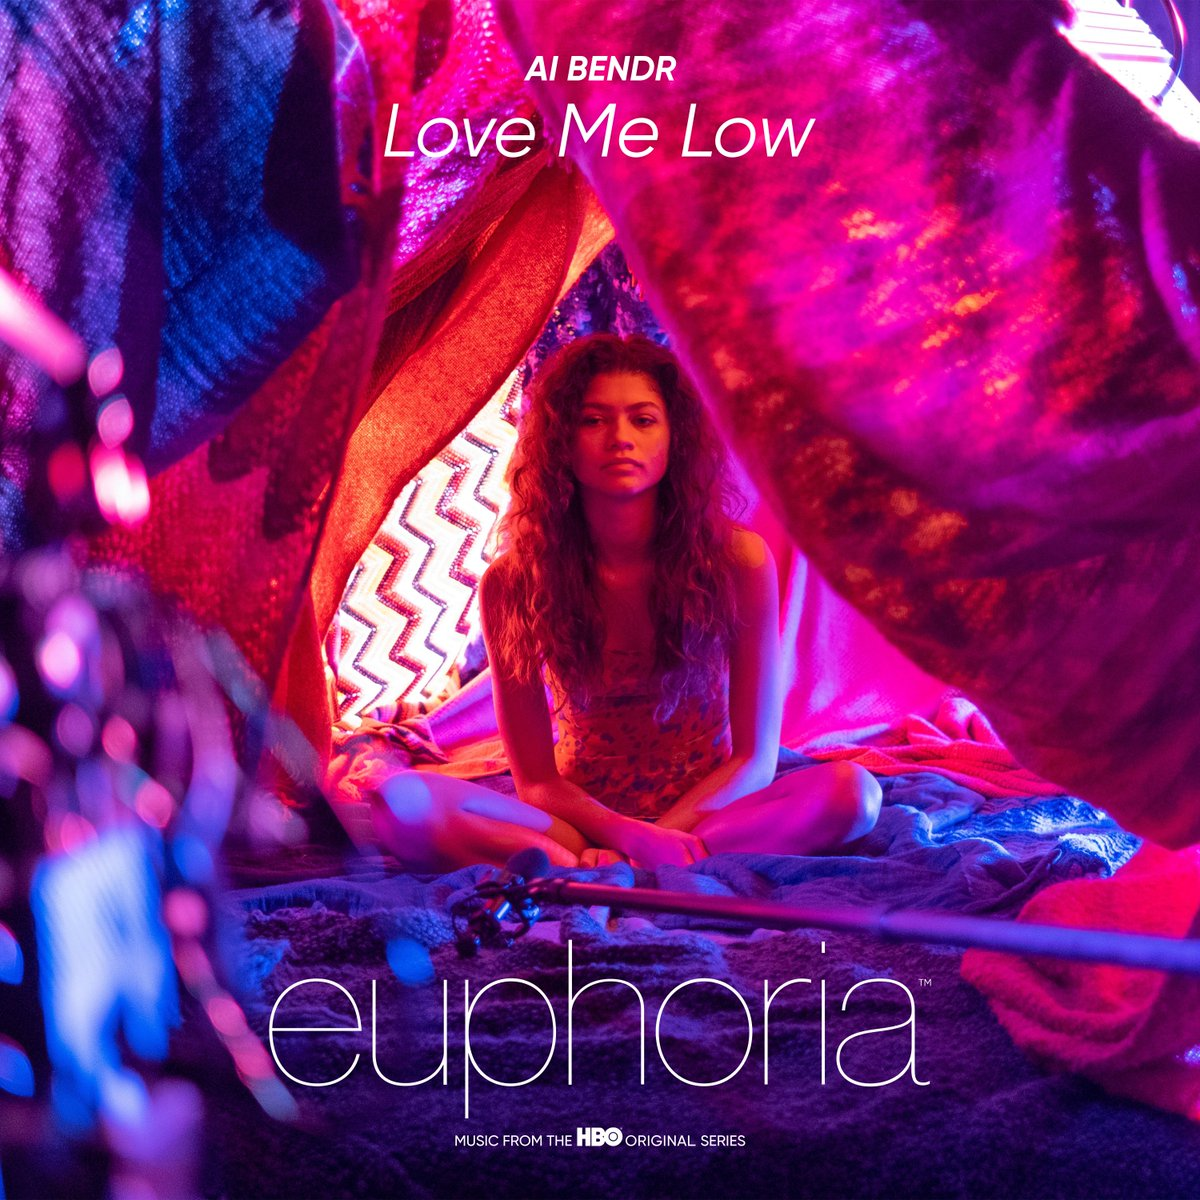 love me low. stream the single from @iloveaibendr as featured in part two: jules:  #EUPHORIA